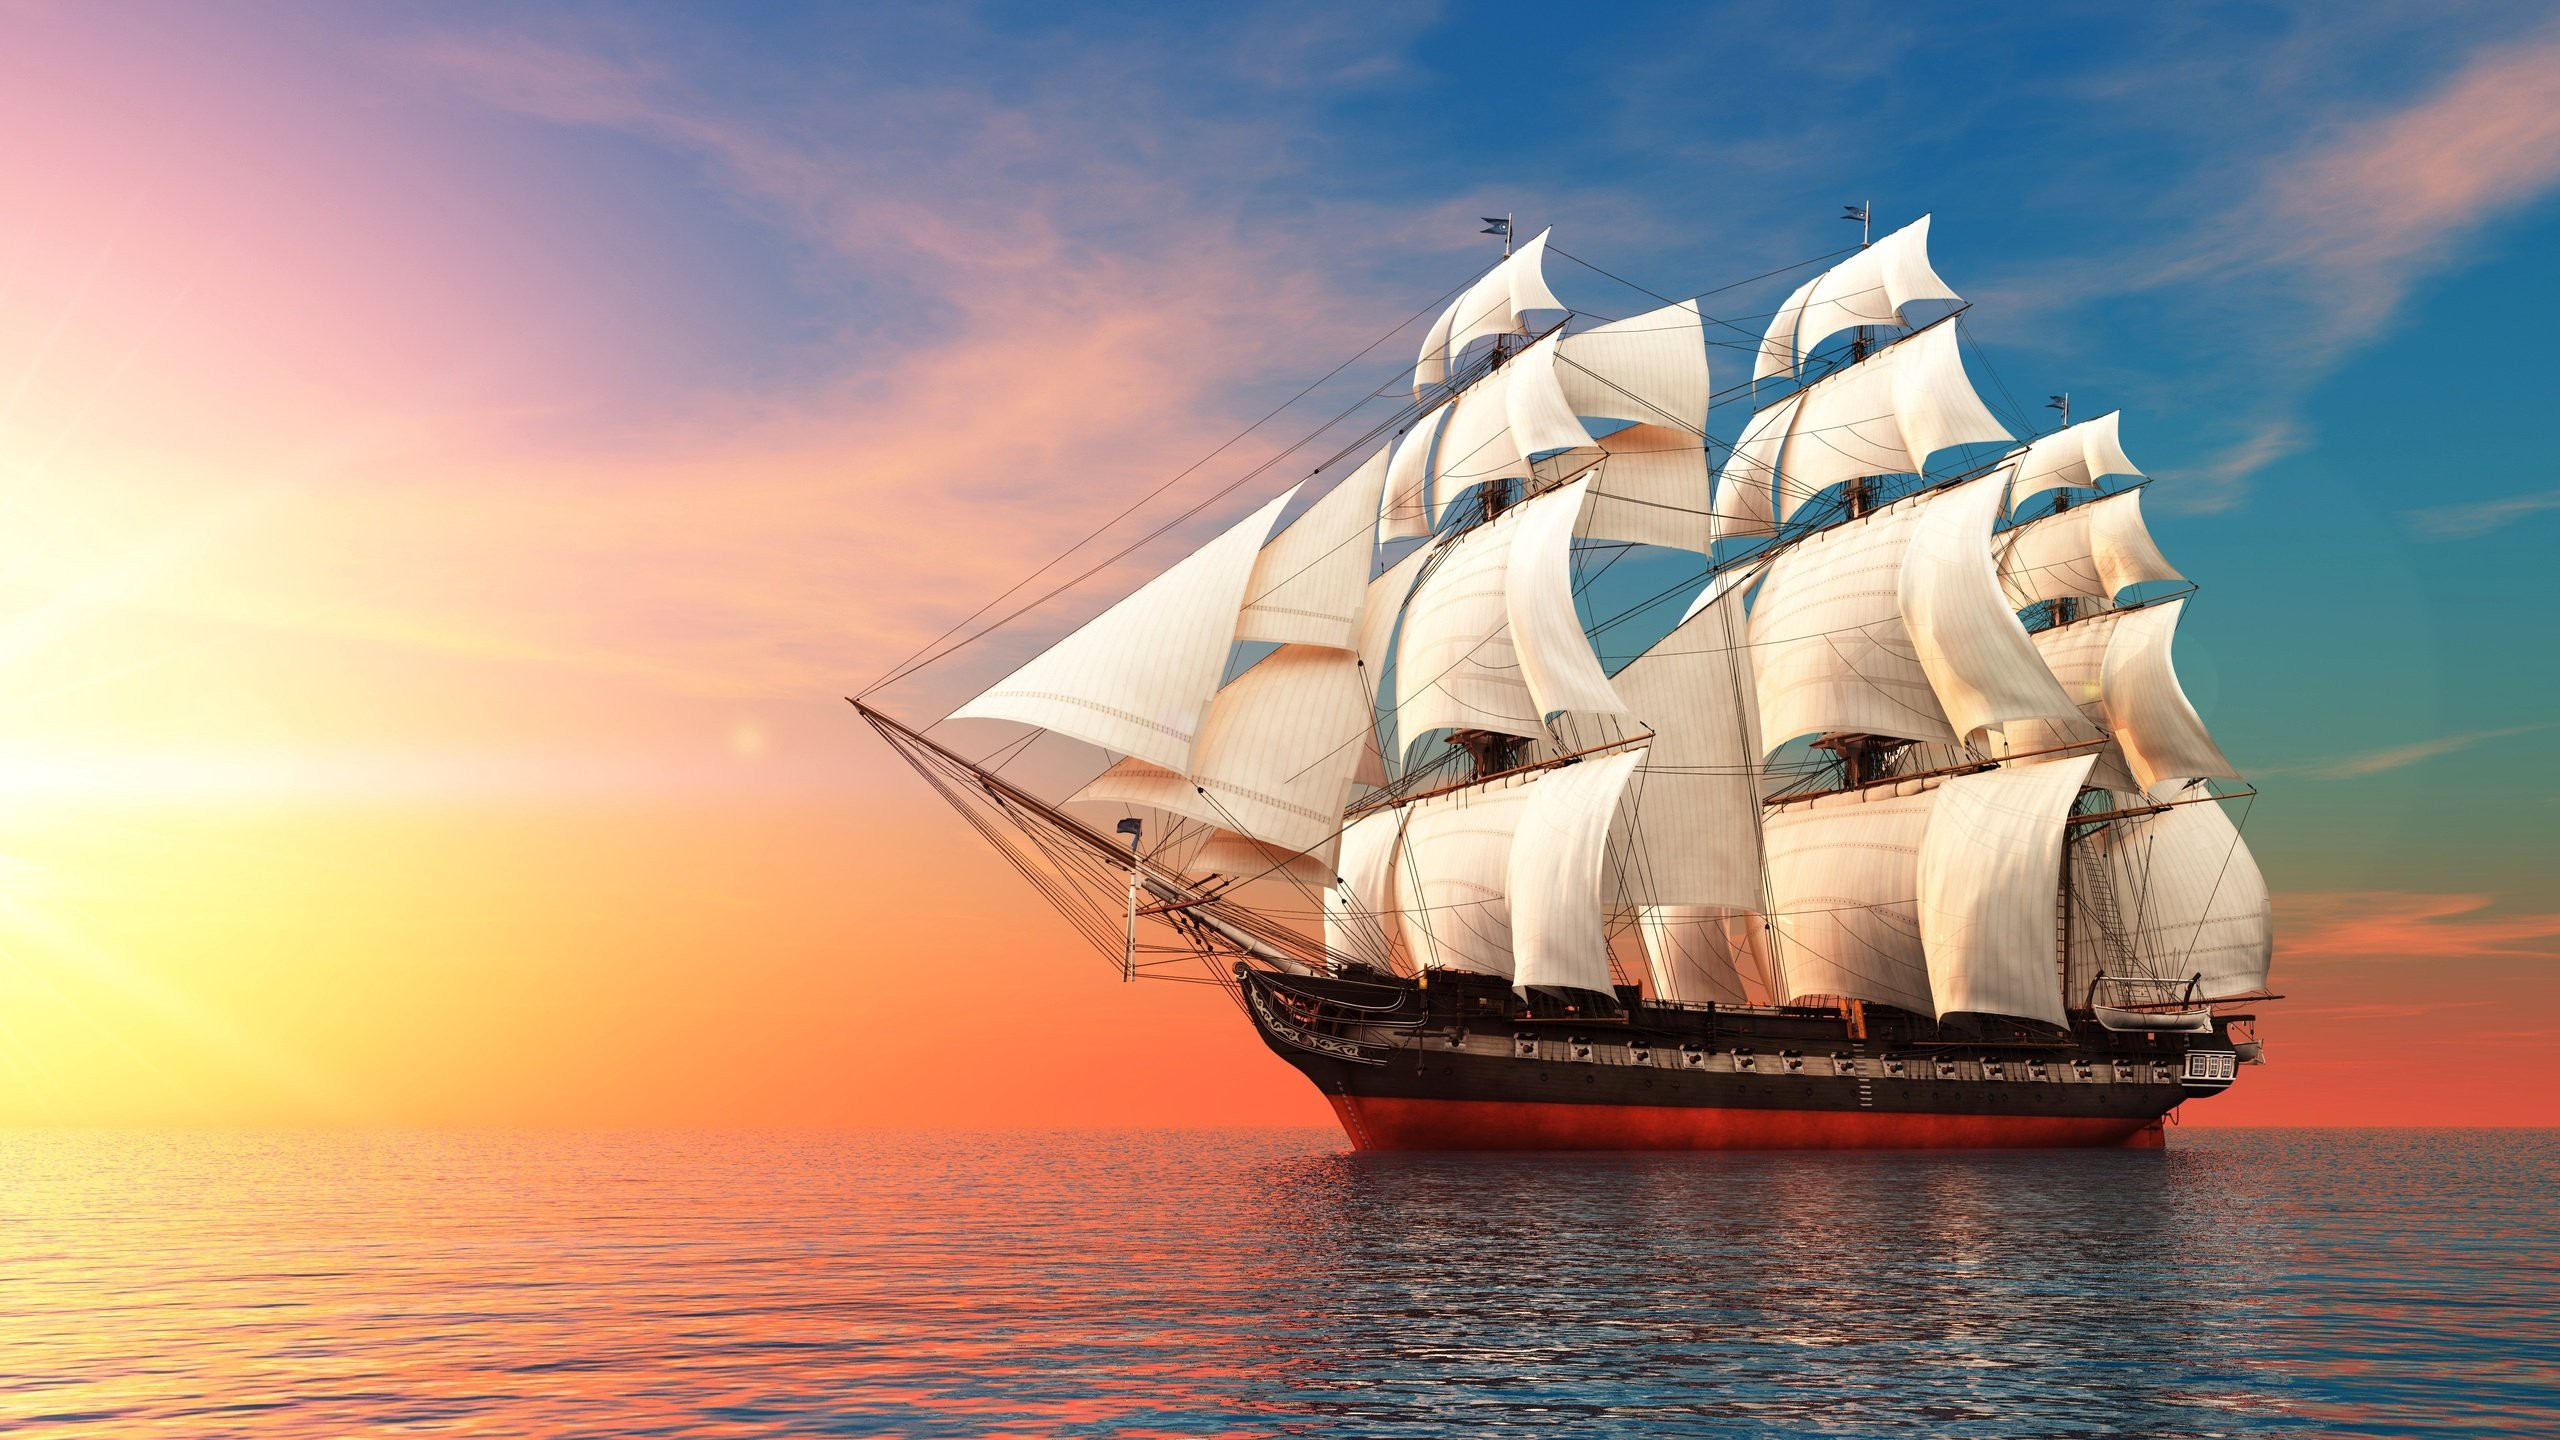 sunset ocean sailing ship free desktop backgrounds and wallpapers